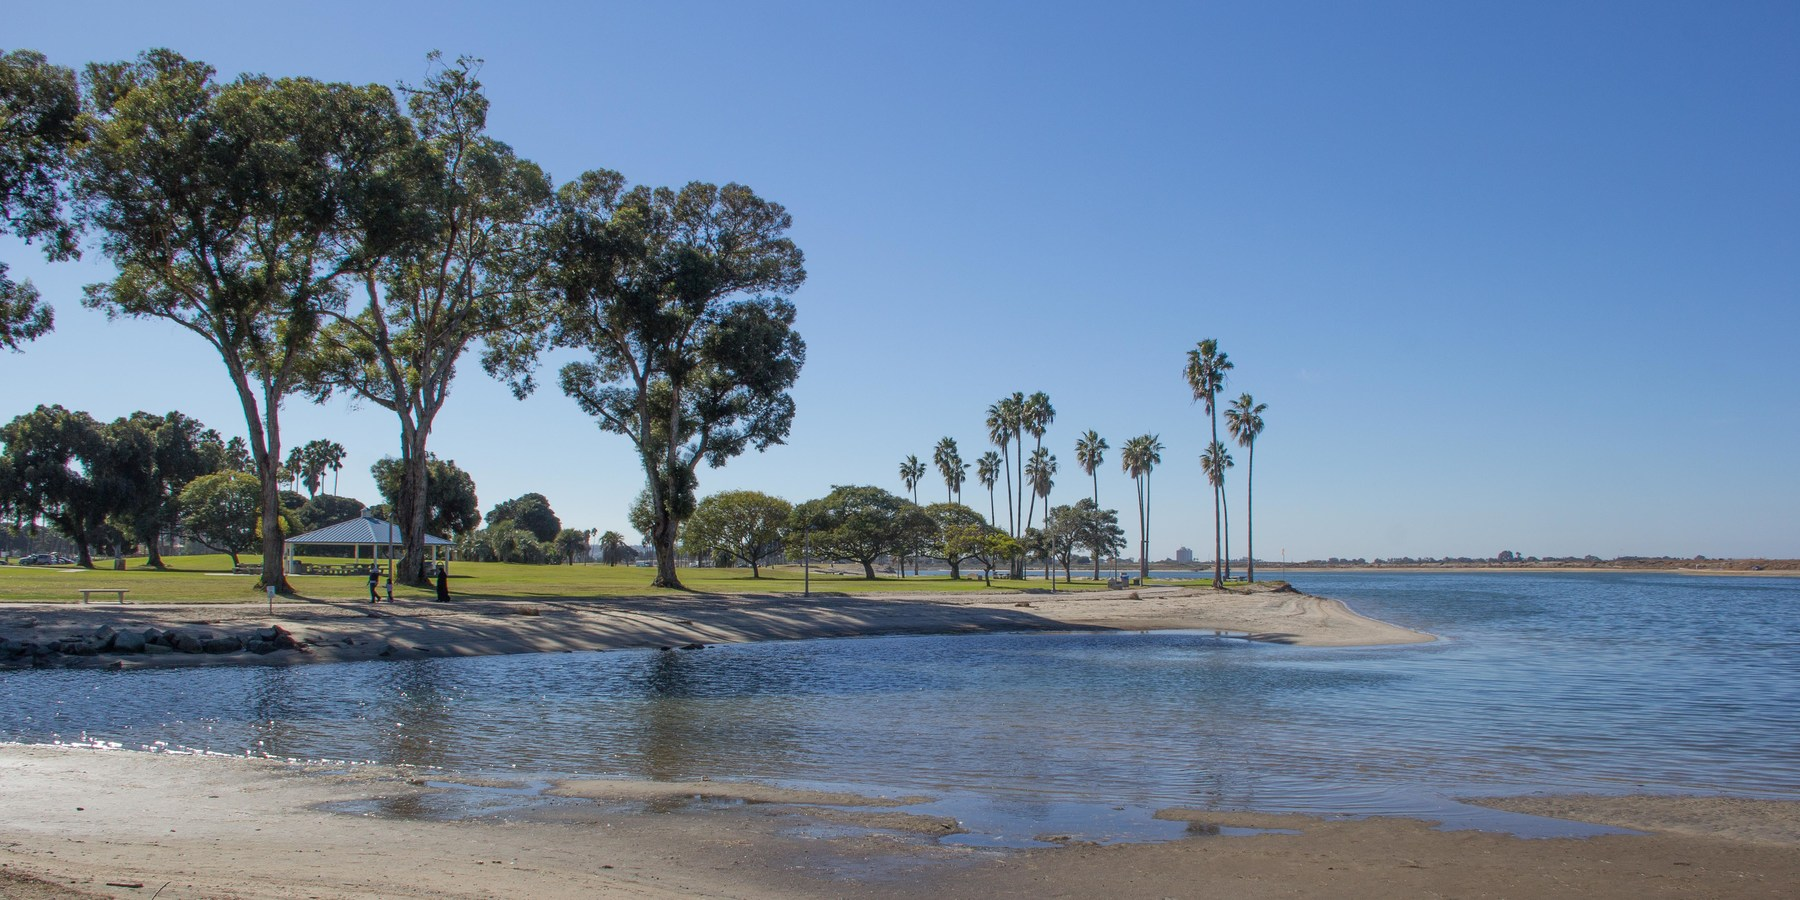 Mission Bay Park Outdoor Project